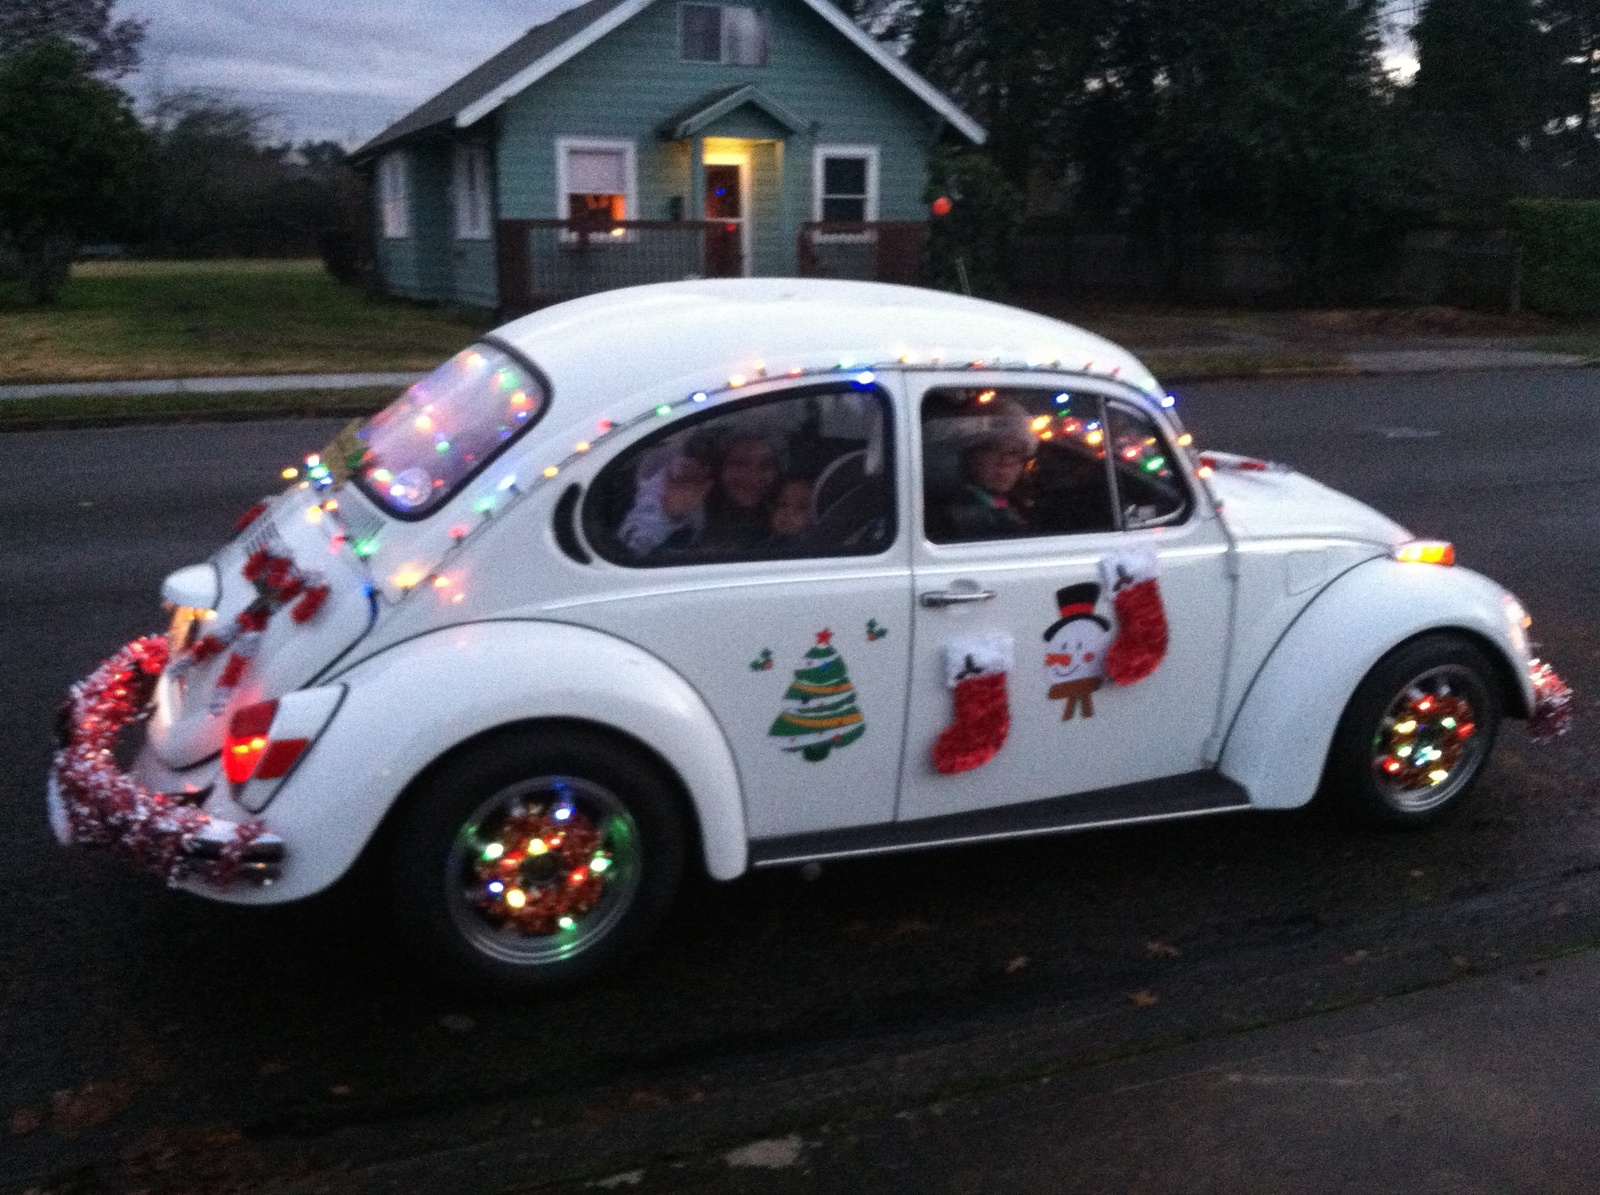 decorated for Xmas parade - winter 2014